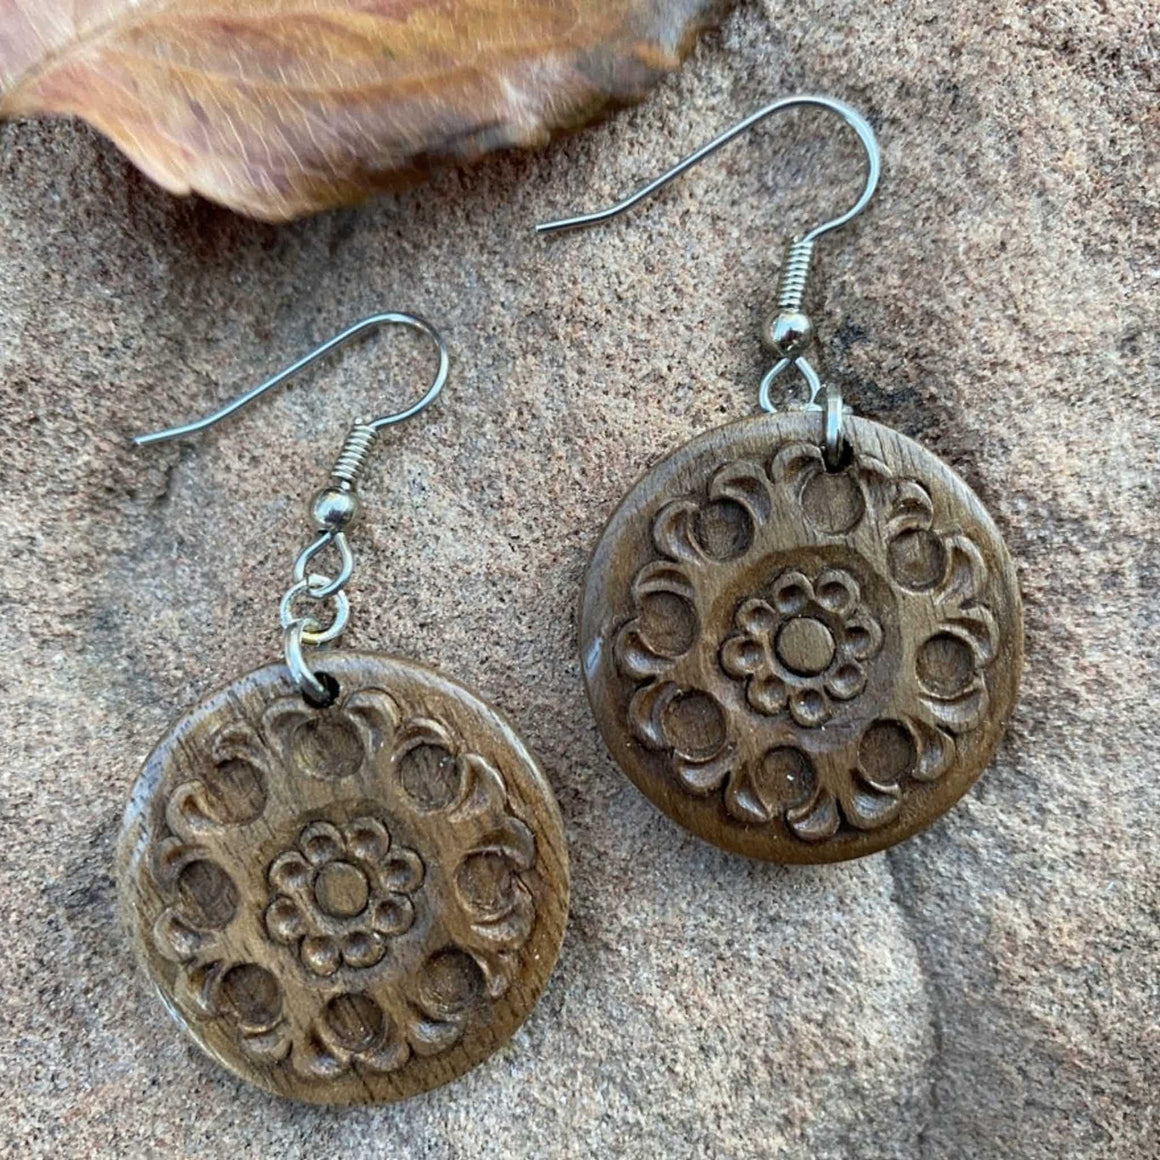 Apricot Wood Earrings, Hand Carved in Tajikistan, Round Floral Pattern, Surgical Steel Wires